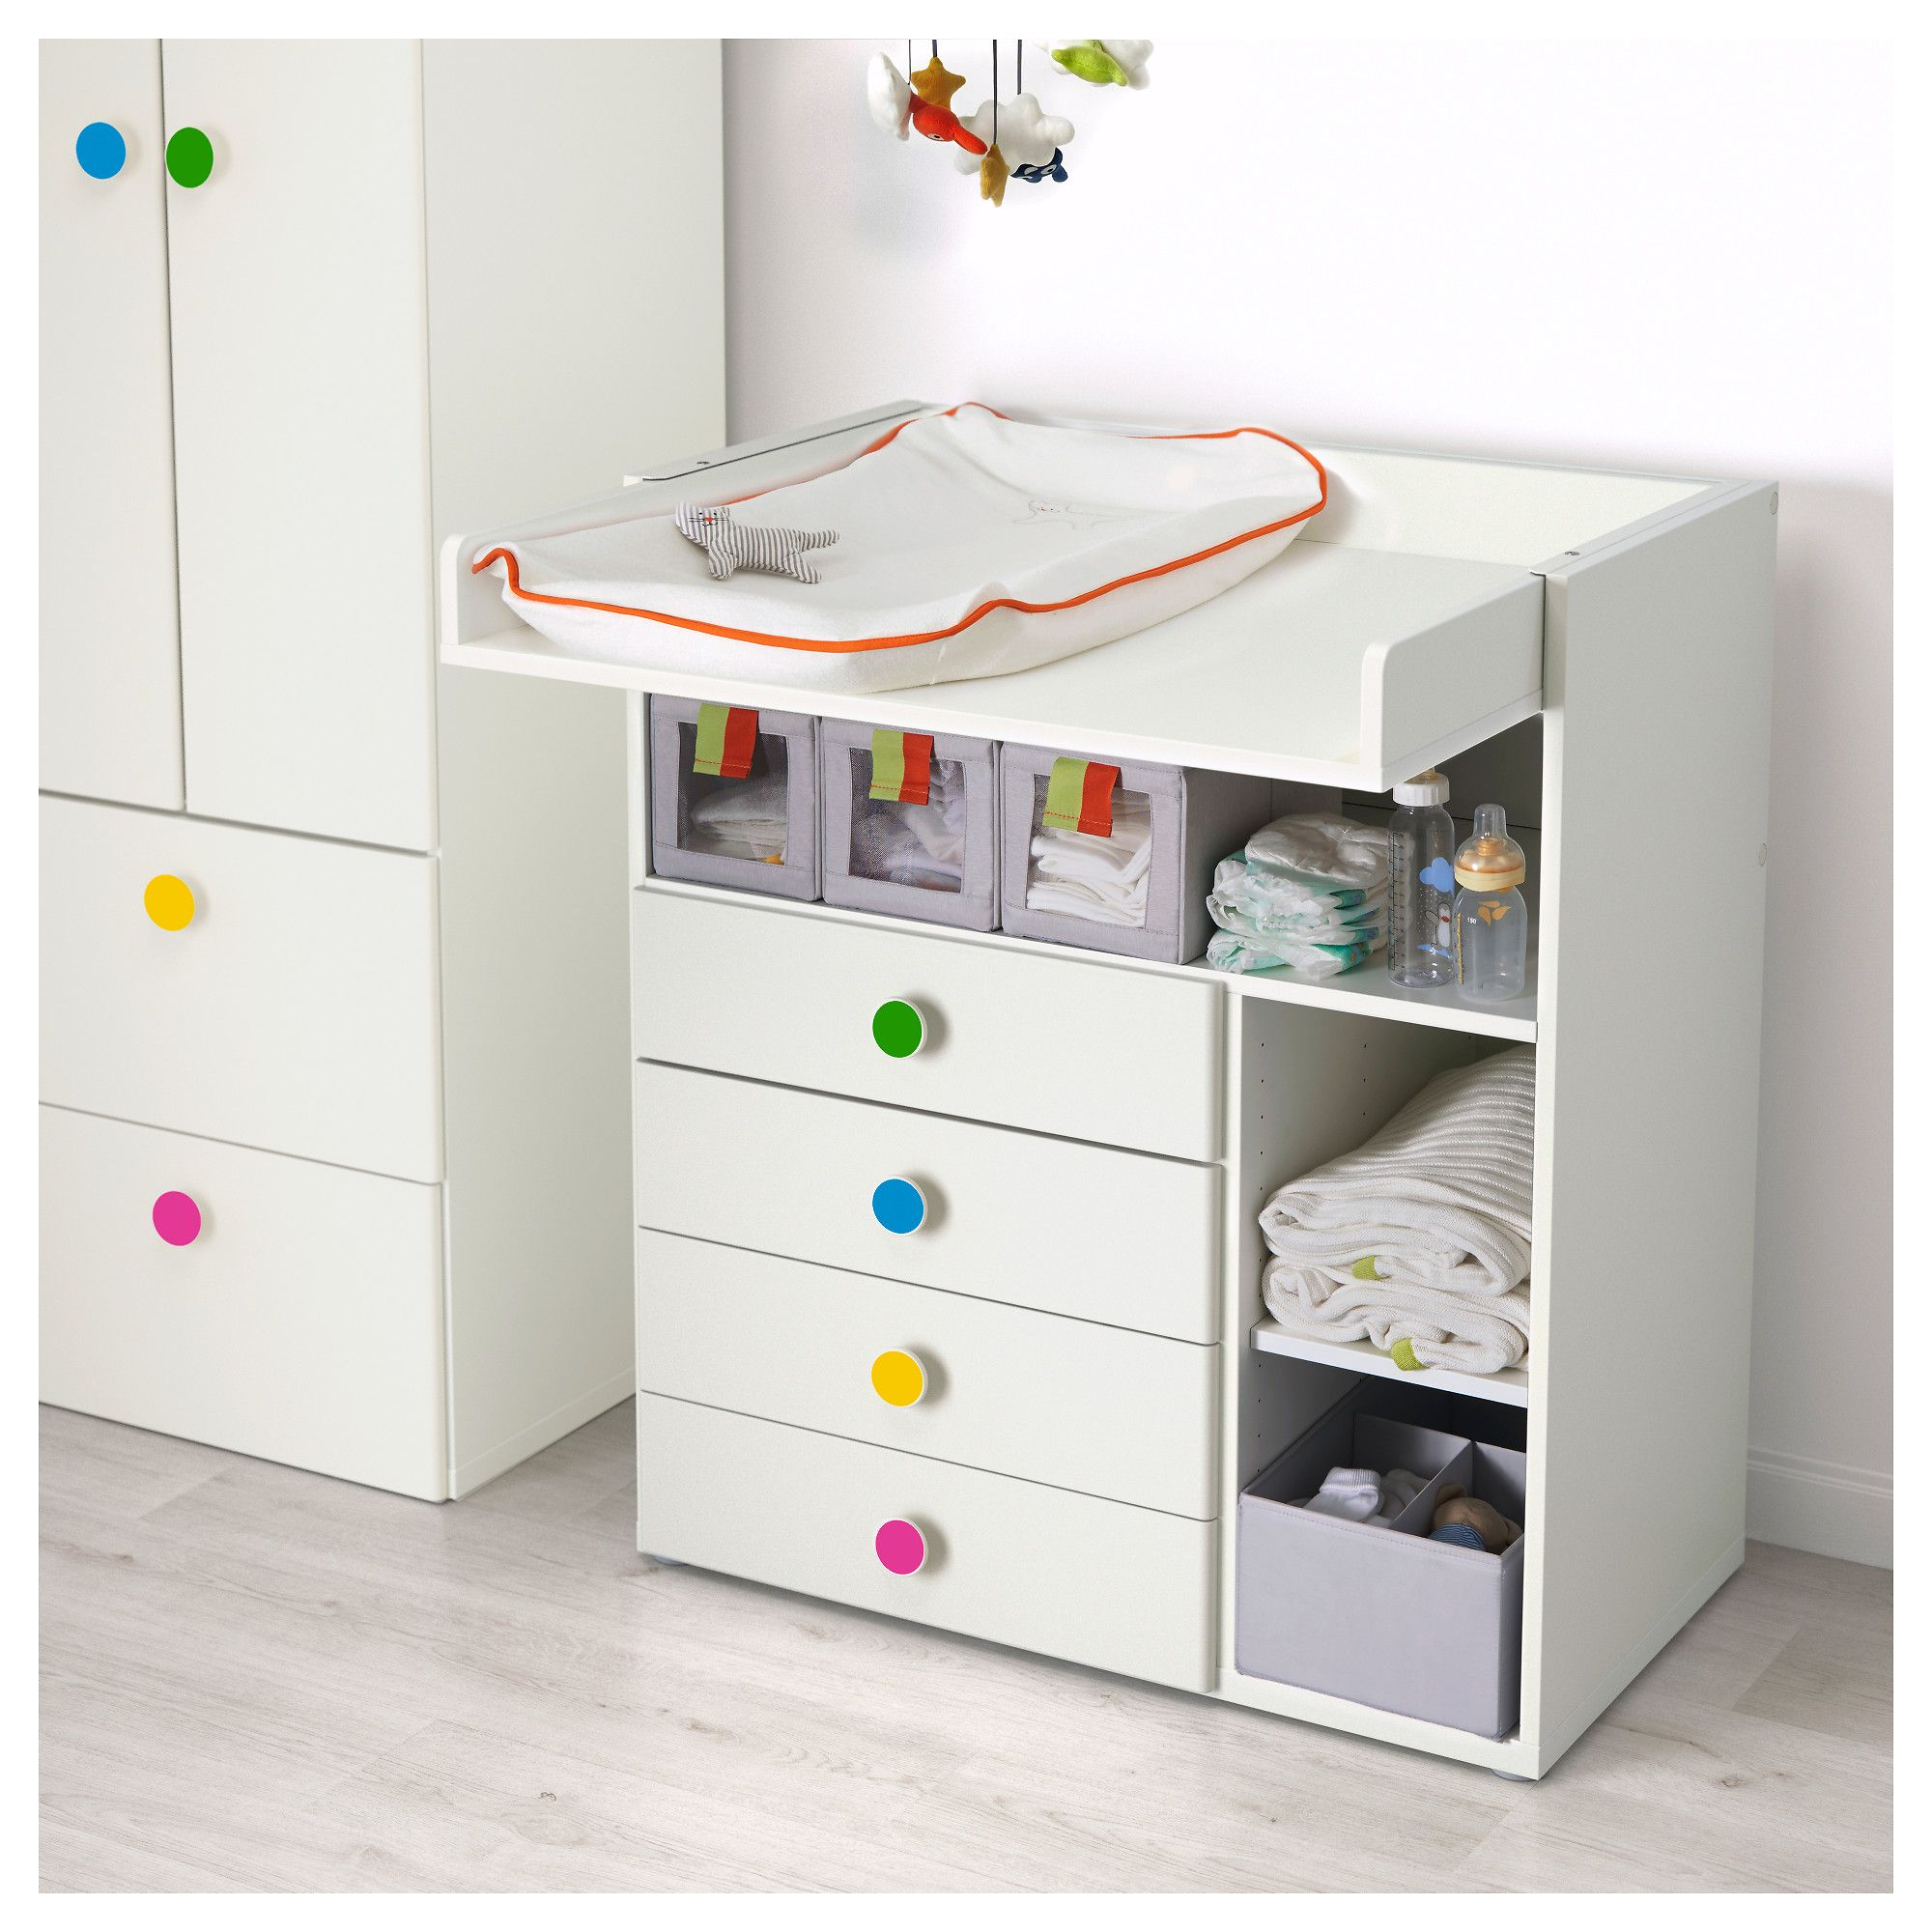 Muebles Cambiadores Para Bebes Ikea Stuva FÖlja Changing Table With 4 Drawers White